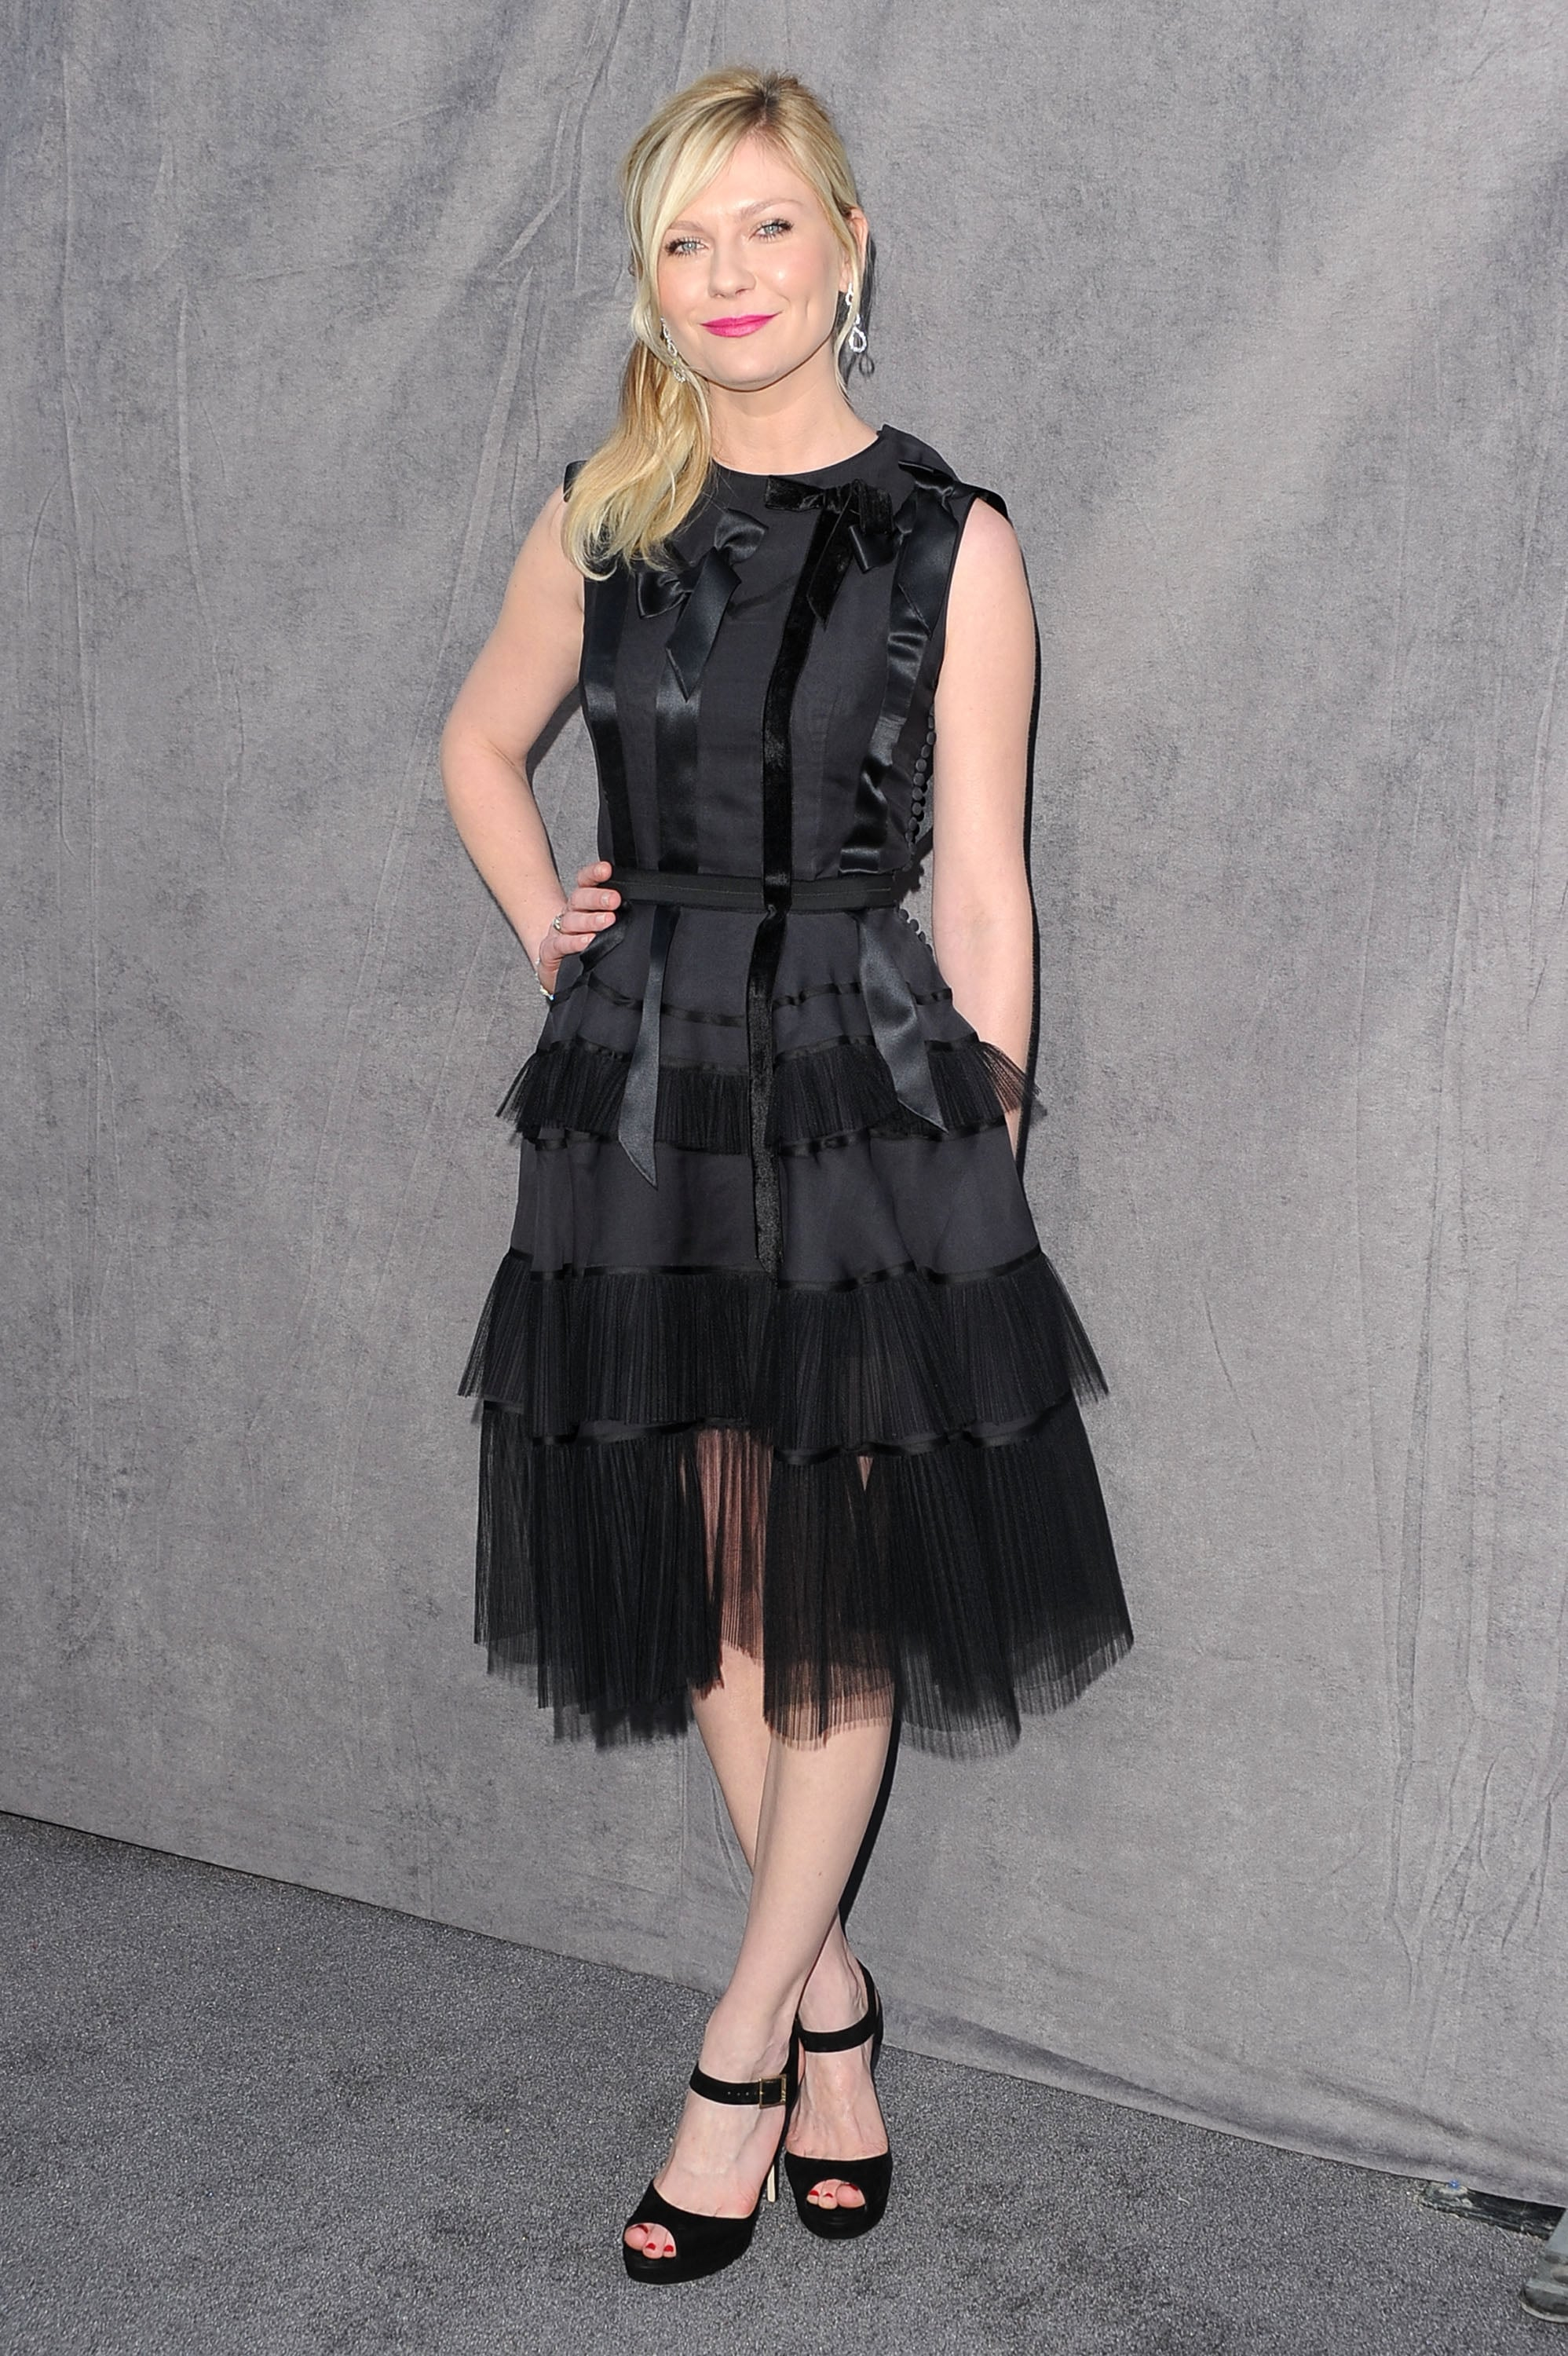 Kirsten Dunst in a black Dior dress at the 2012 Critics' Choice Movie Awards.